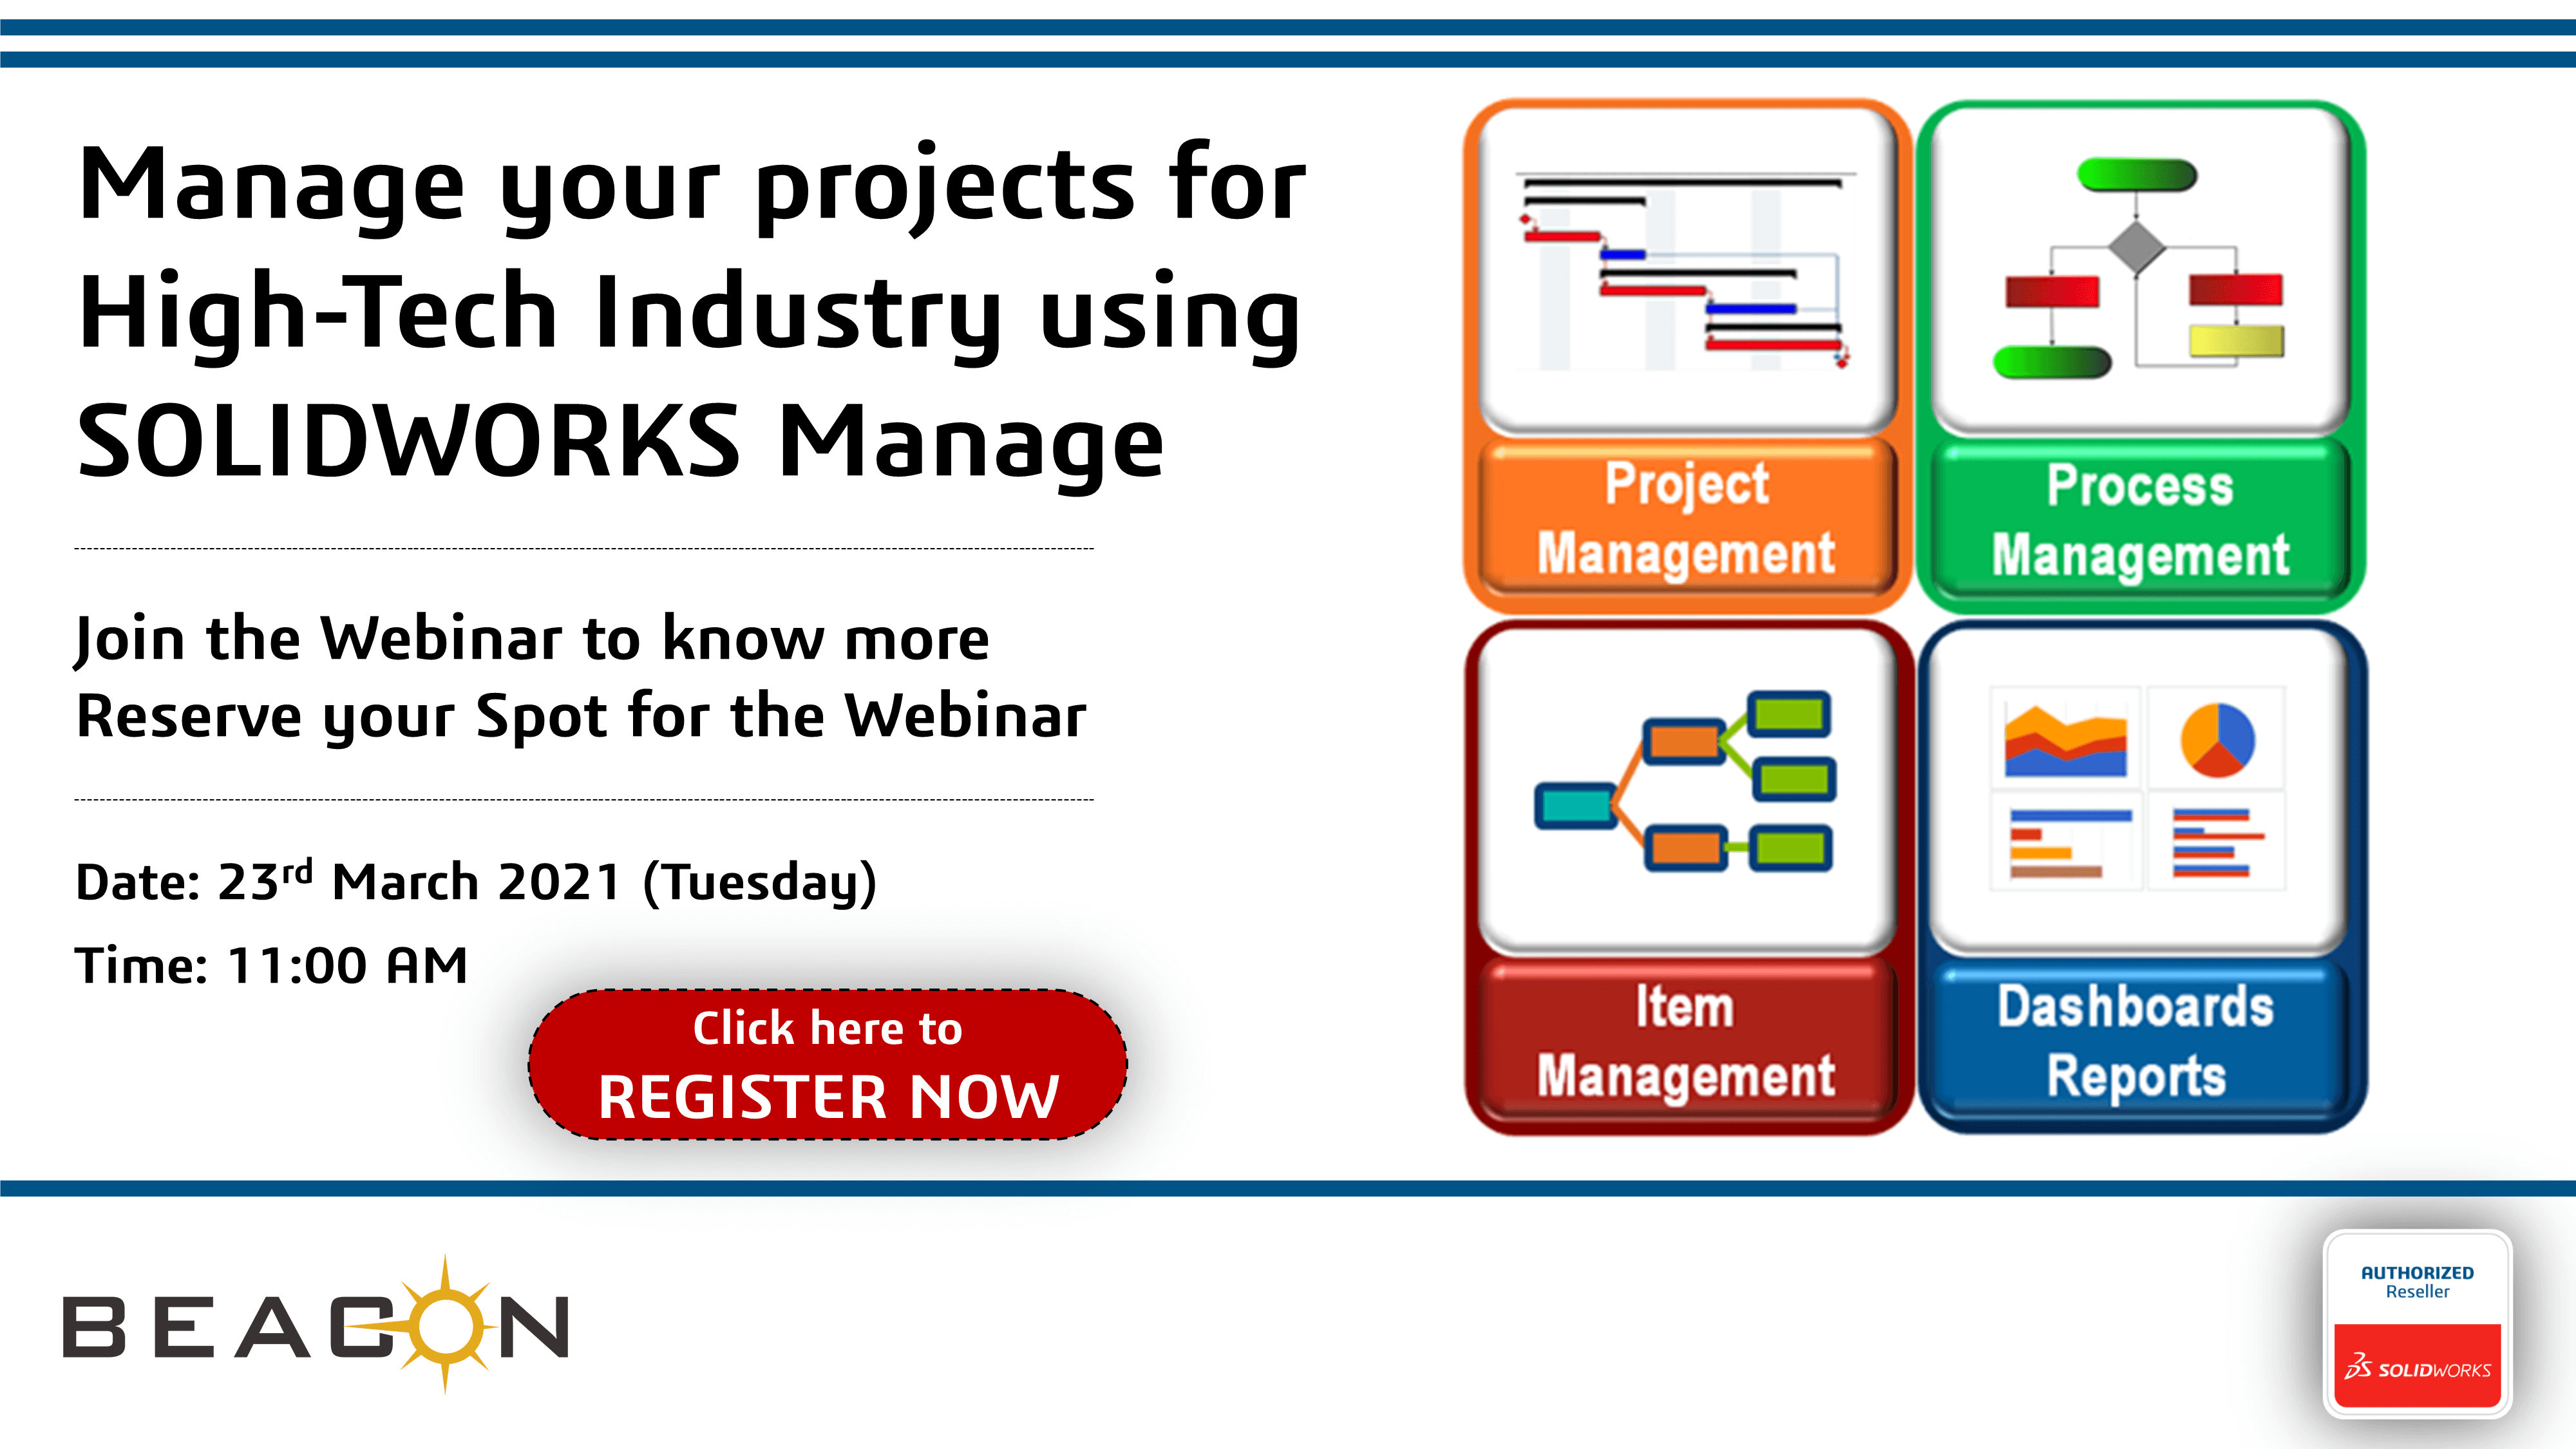 Manage your projects for High-Tech Industry using SOLIDWORKS Manage